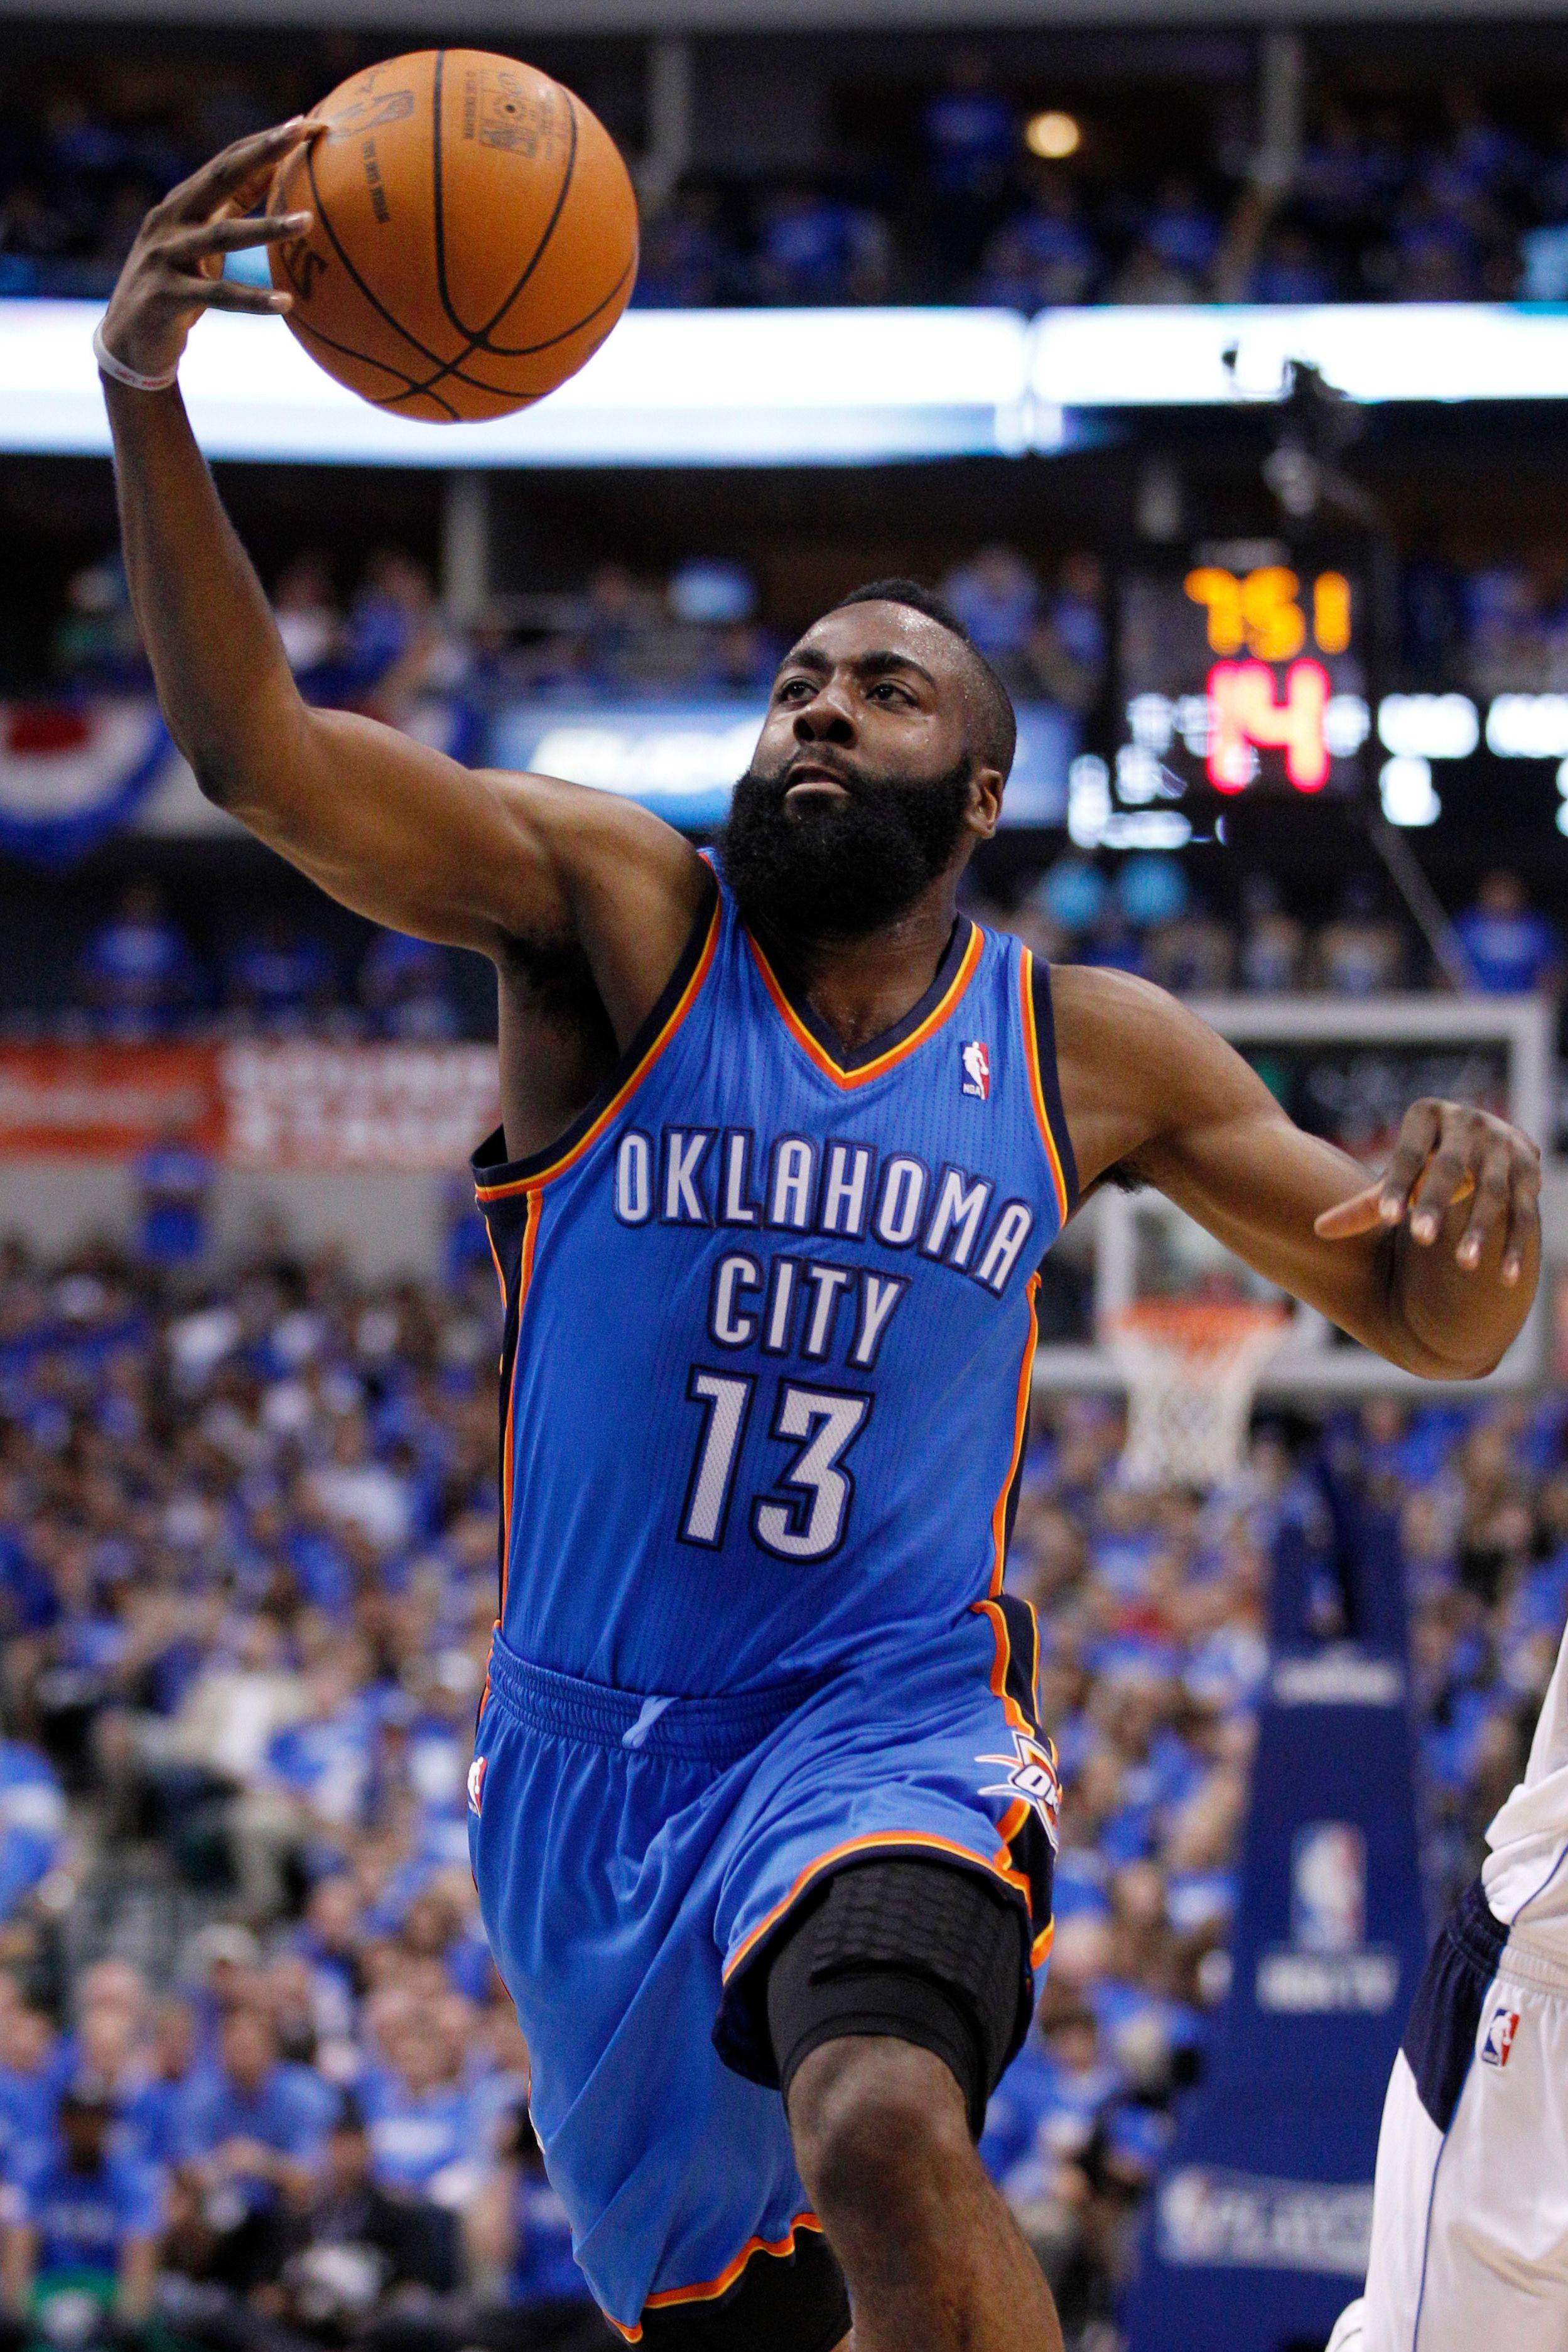 James Harden was traded last week from the Western Conference champion Thunder to the rebuilding Rockets.